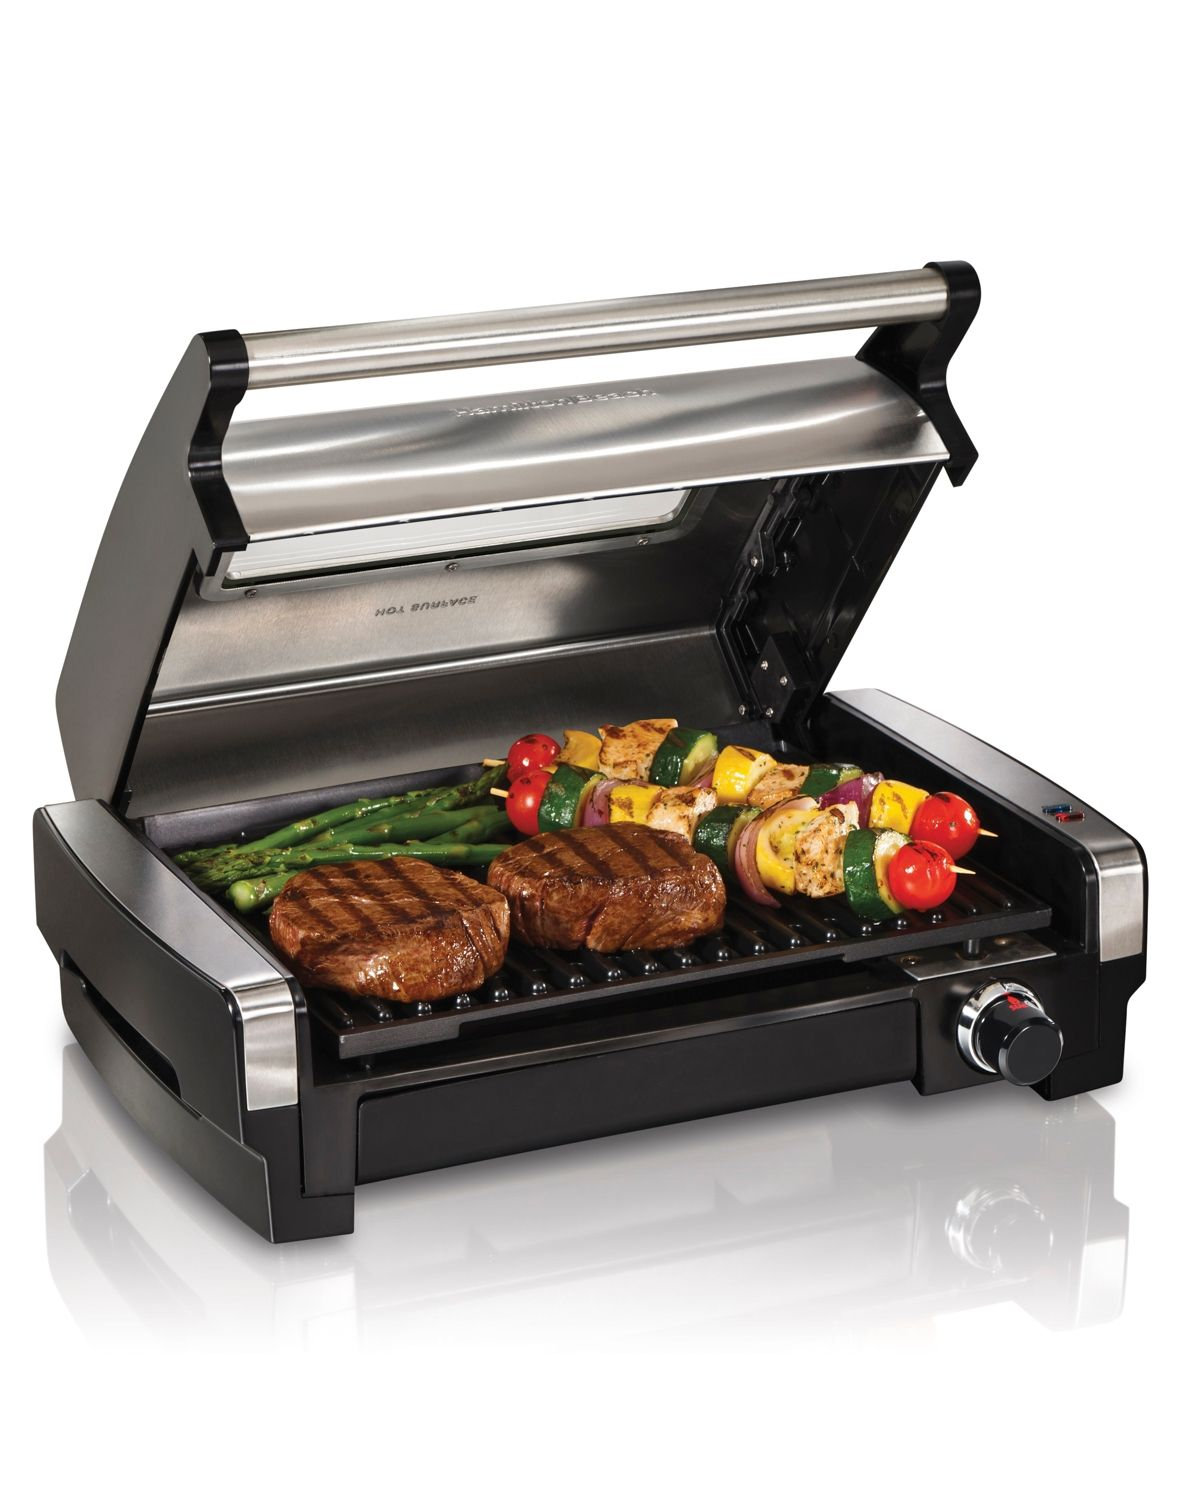 Hamilton Beach Searing Grill Black In 2020 Indoor Electric Grill Cooking Area Bbq Kitchen